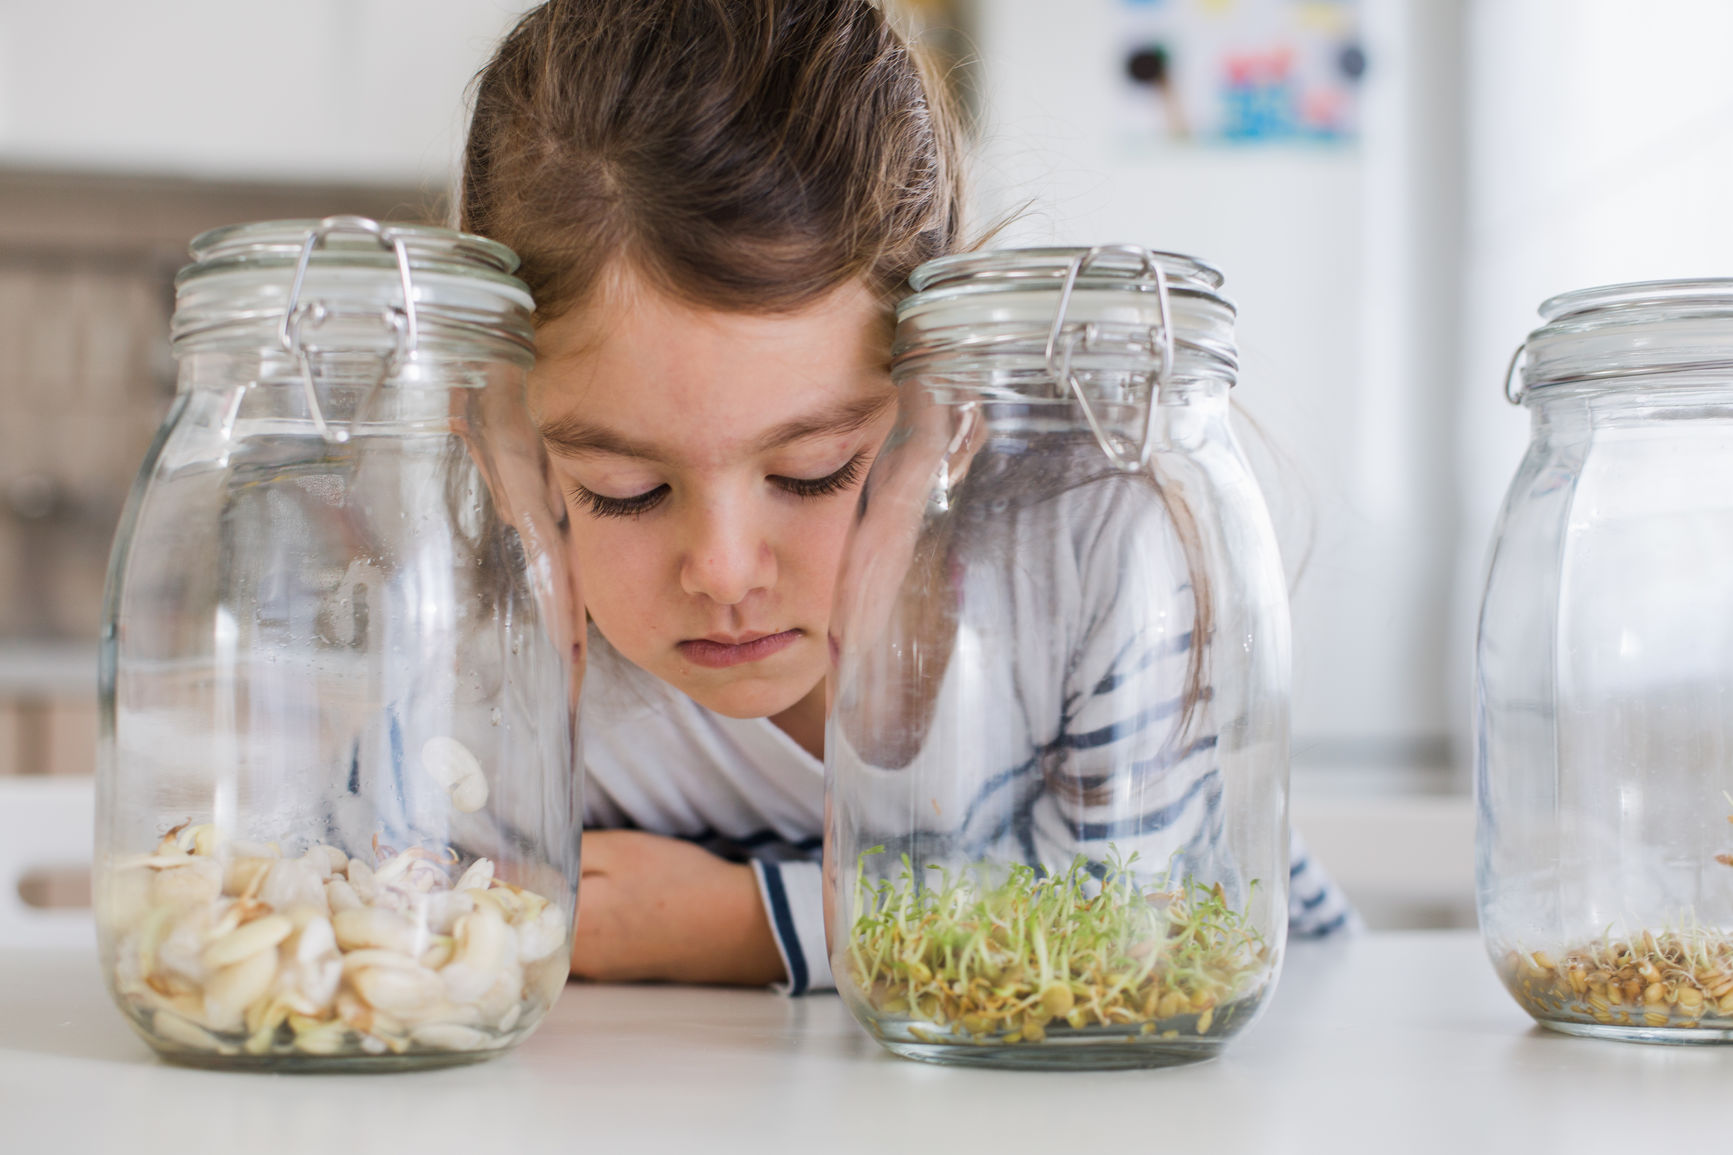 Child looking at the seeds sprouting in a jar as an experiment in homeschooling